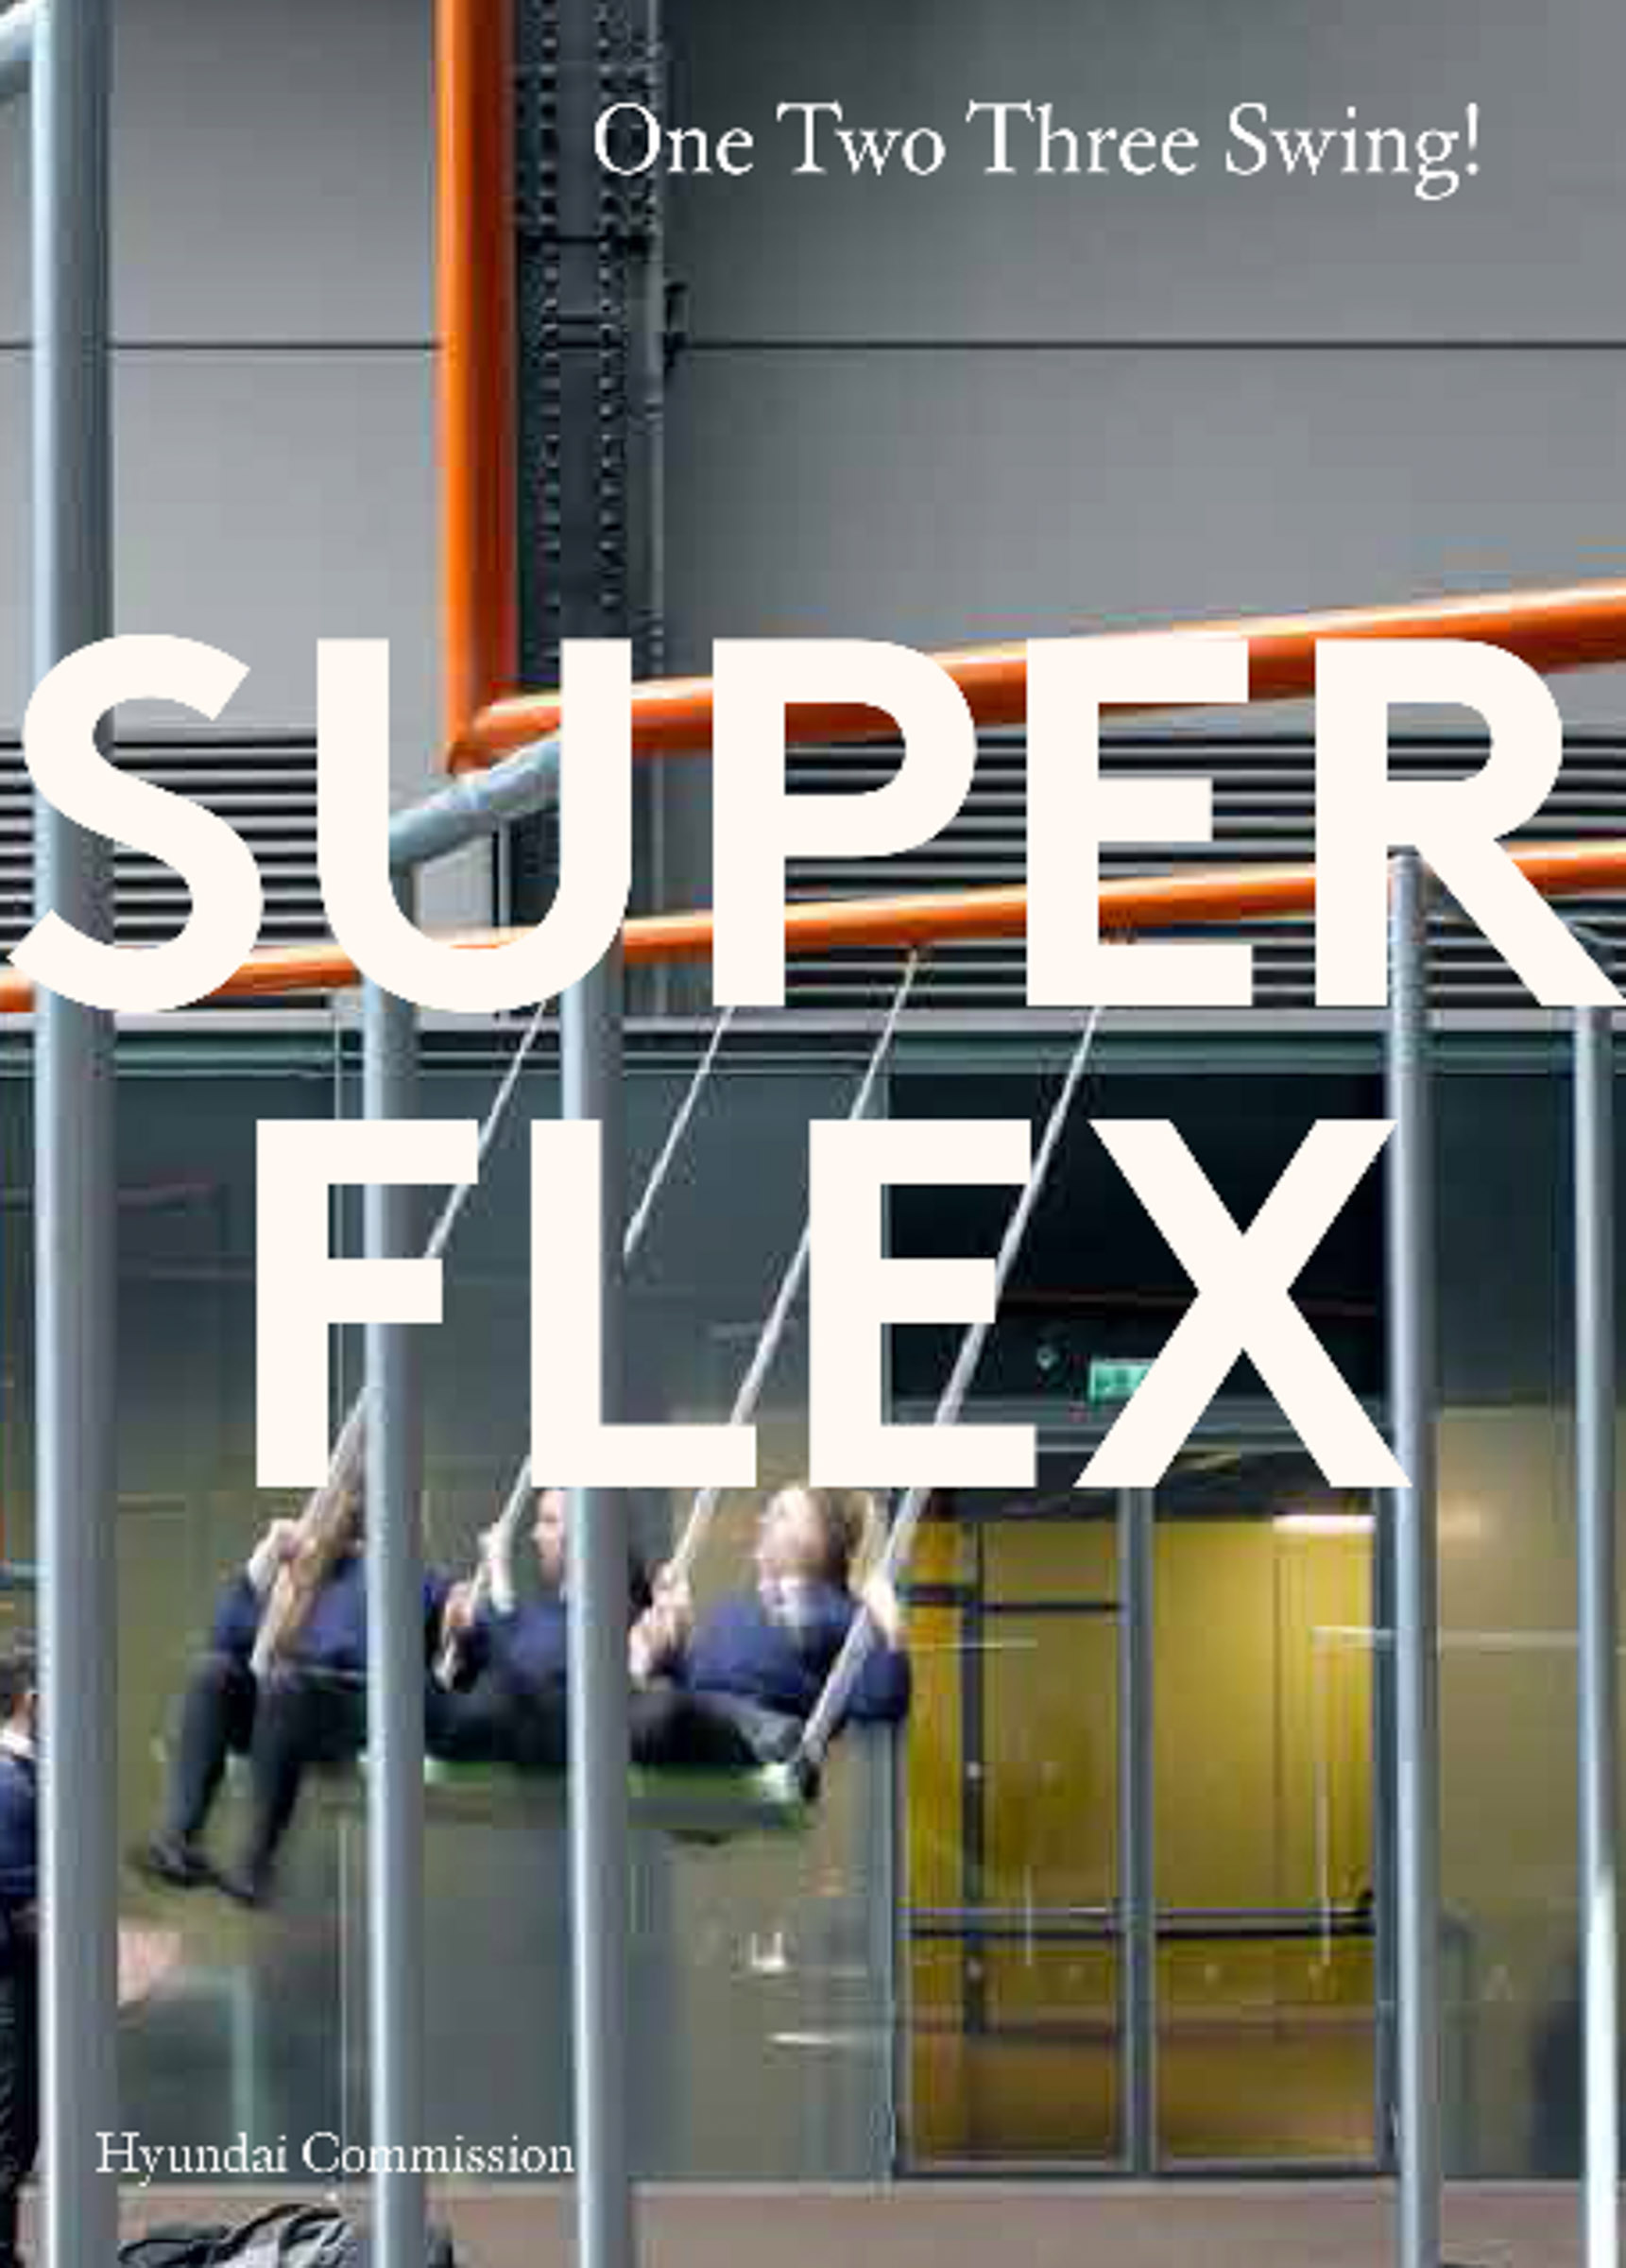 Publication by SUPERFLEX, One Two Three Swing!